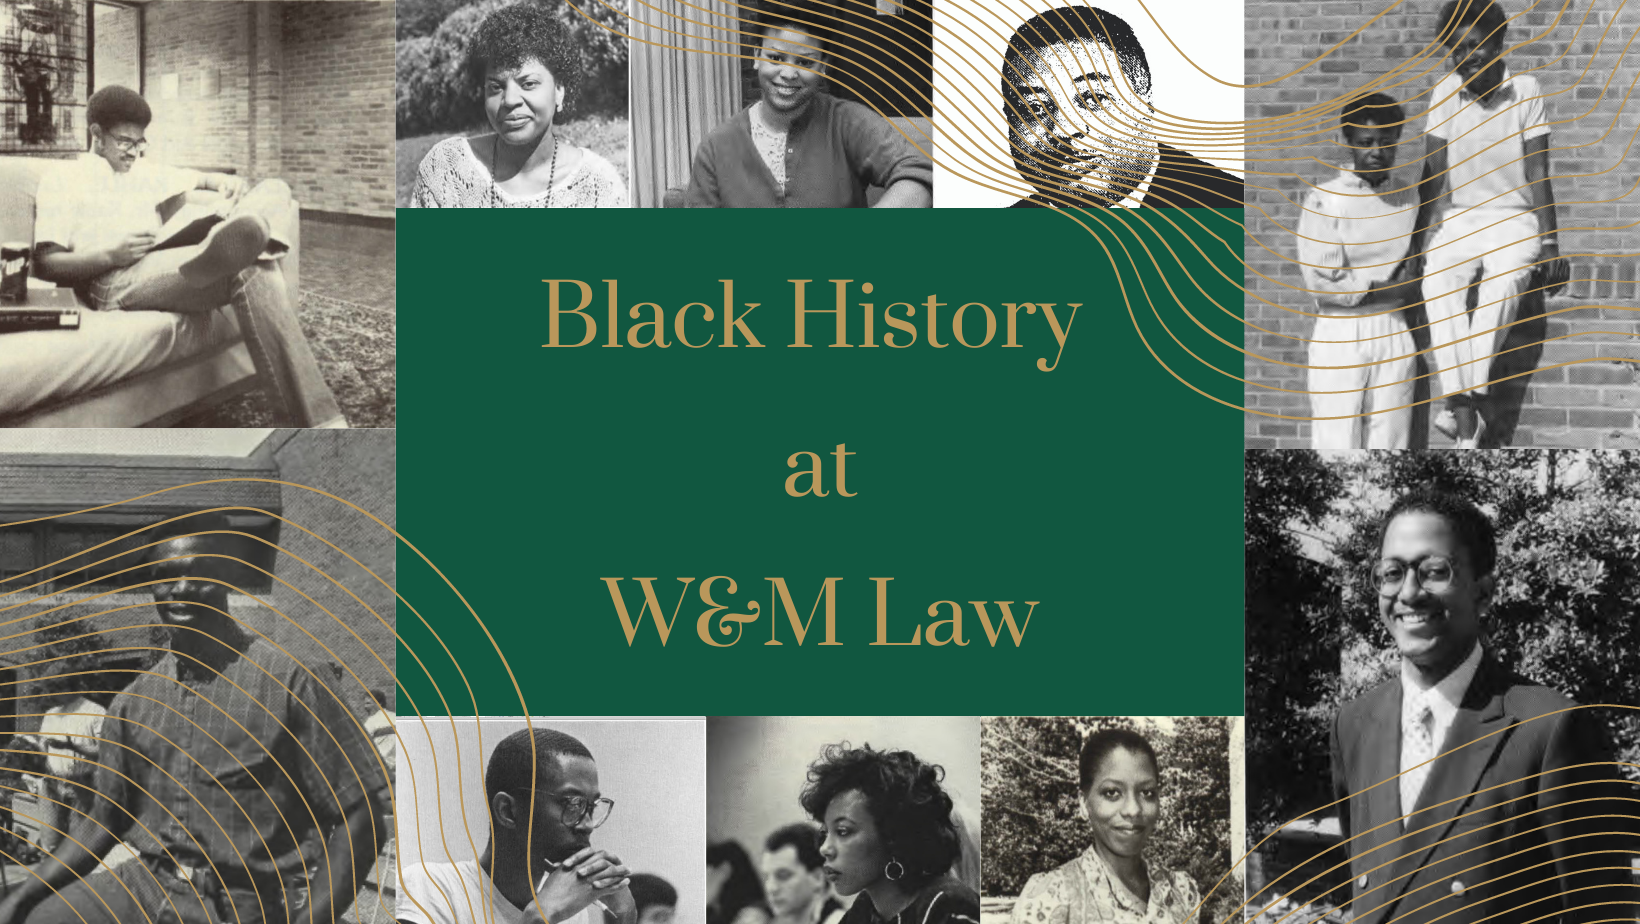 Black History at W&M Law